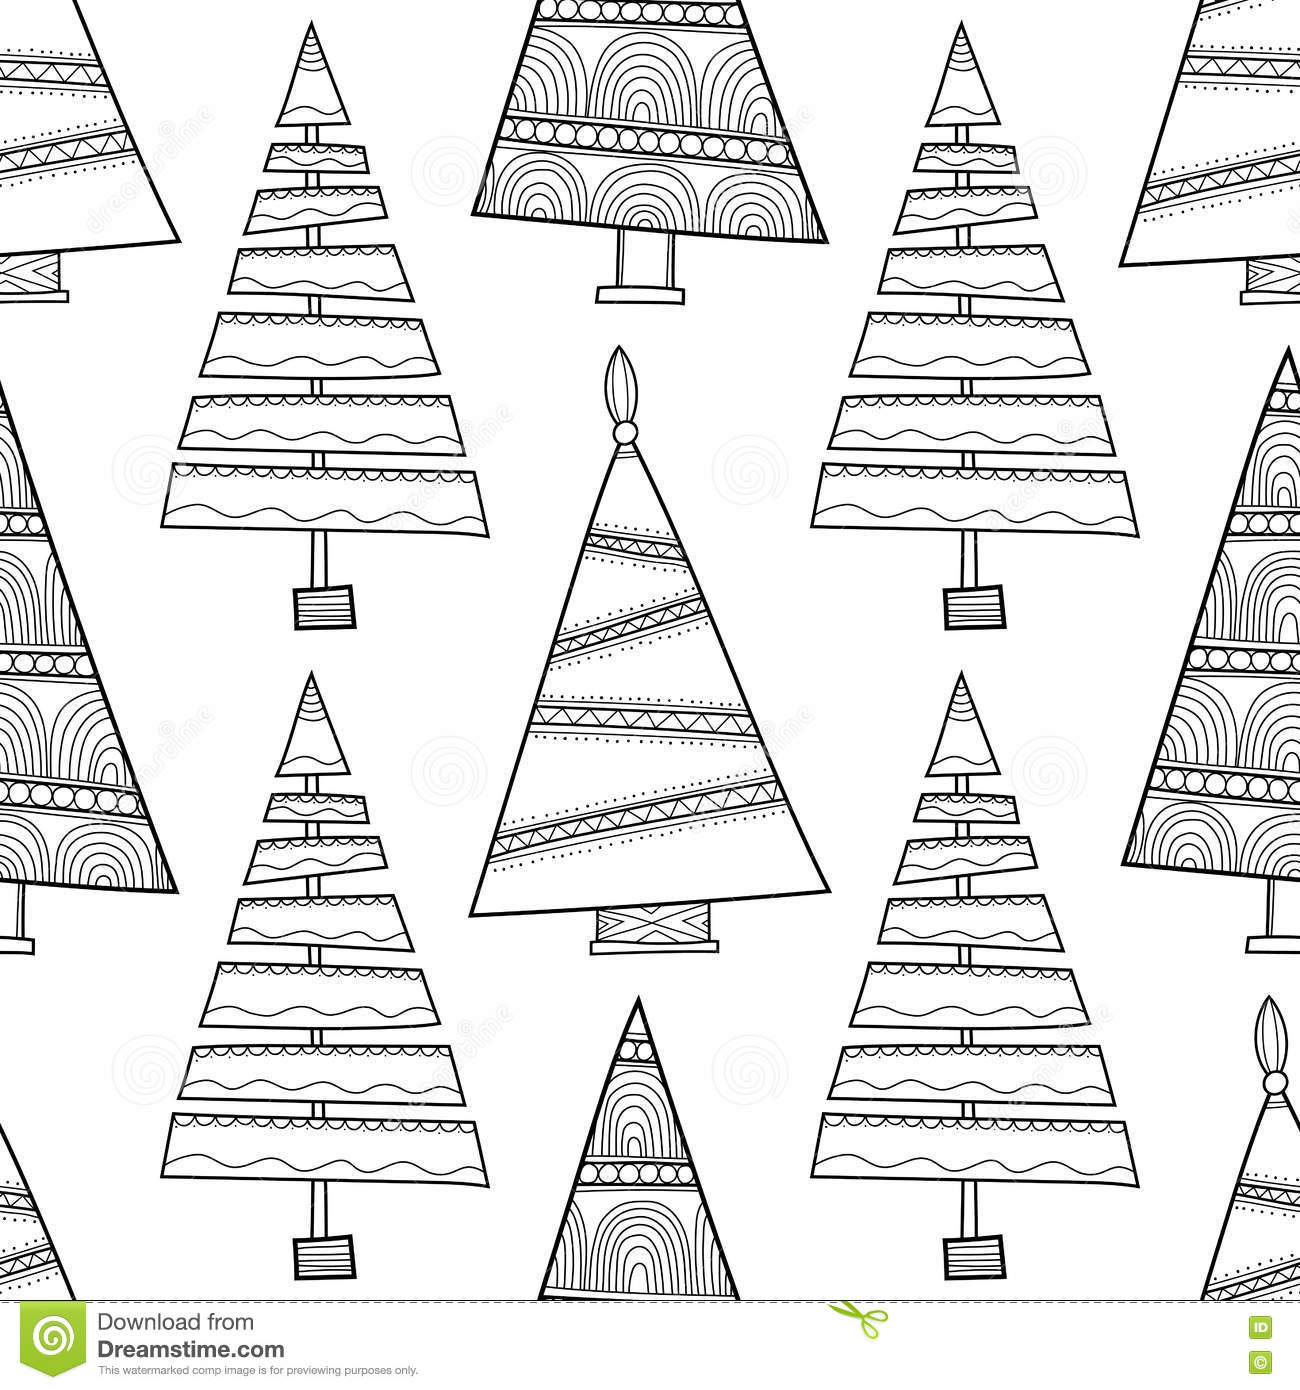 Black And White Seamless Pattern With Christmas Trees For Coloring ...